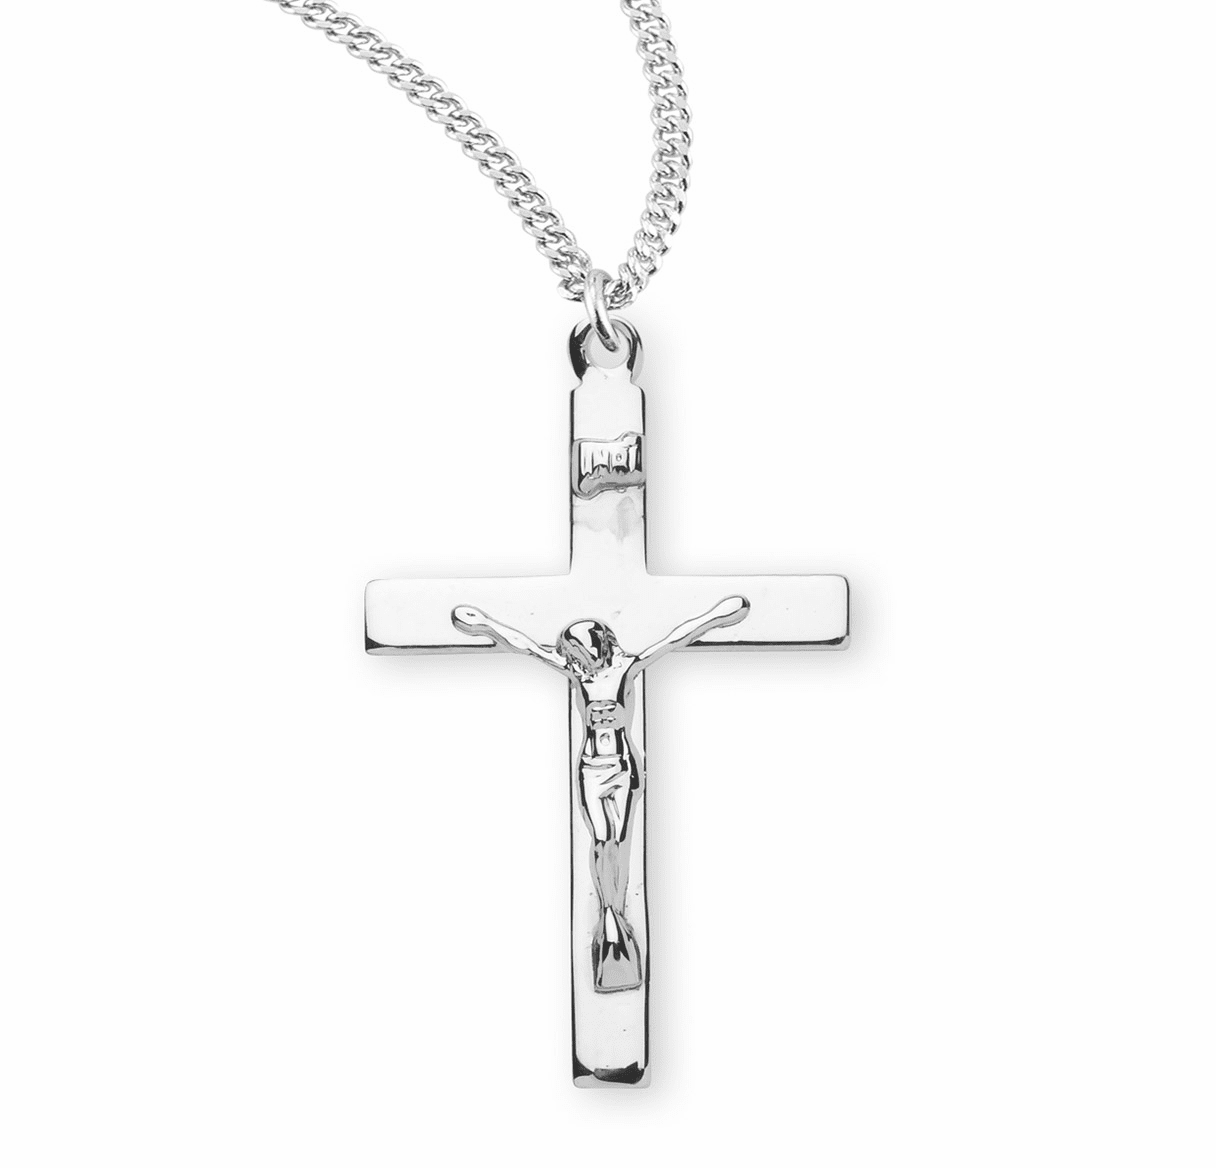 HMH Religious Sterling Silver Highly Polished Crucifix Necklace